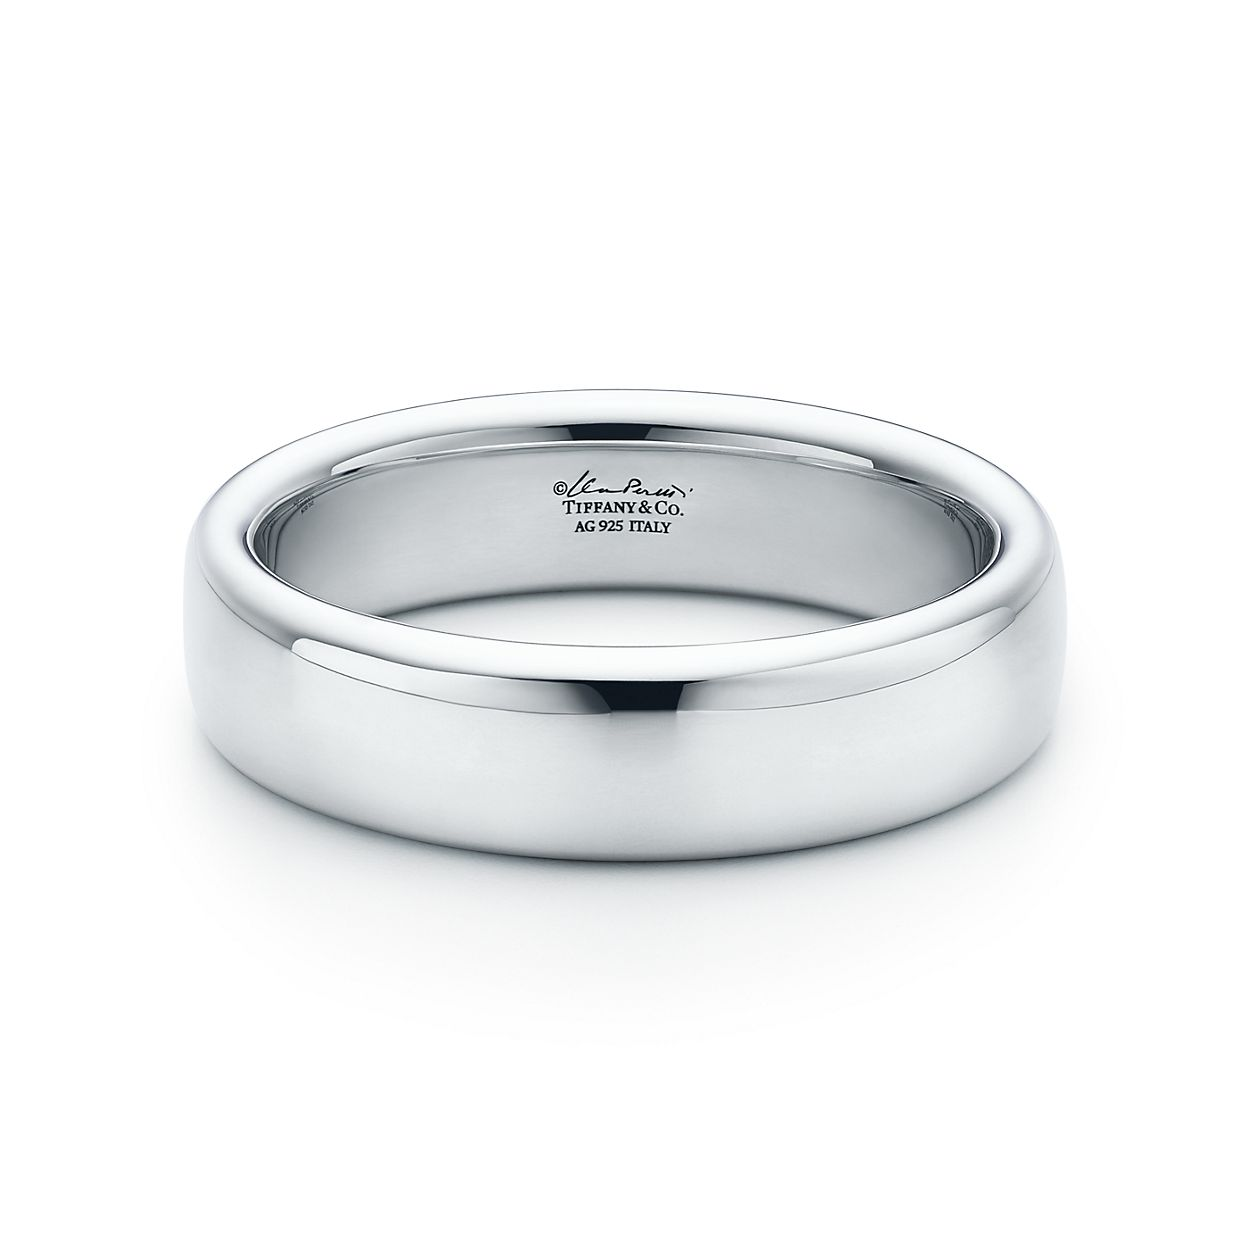 Elsa Peretti Round narrow bangle in sterling silver, medium Tiffany & Co.